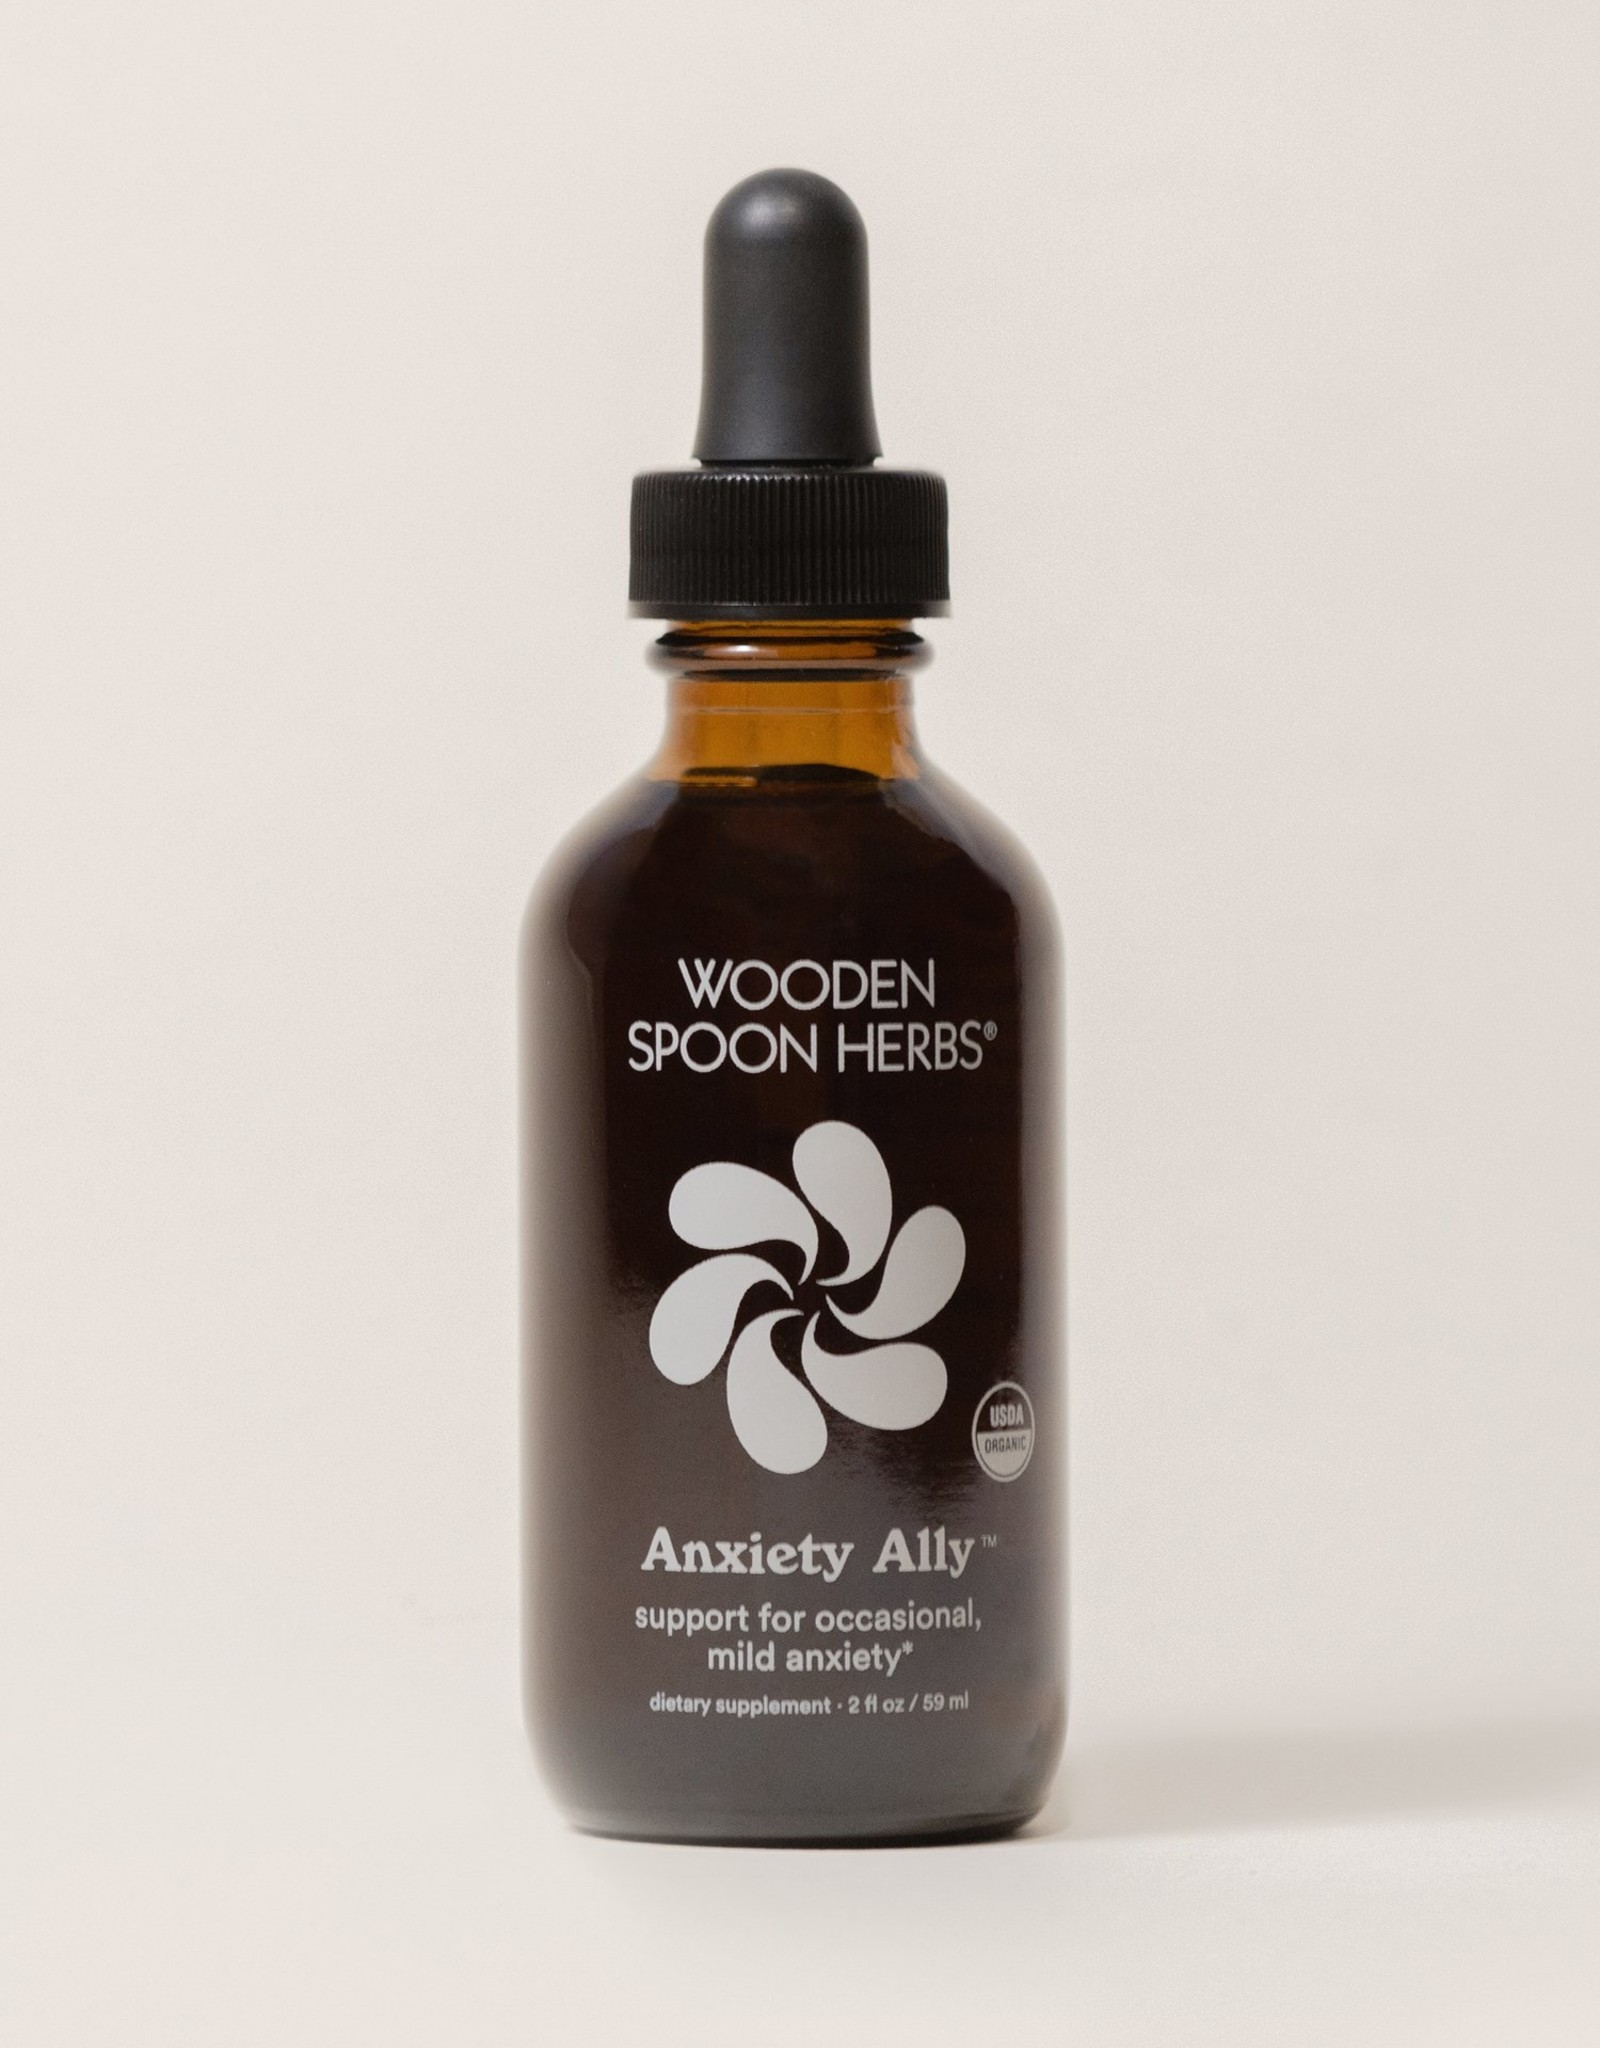 Wooden Spoon Herbs Anxiety Ally